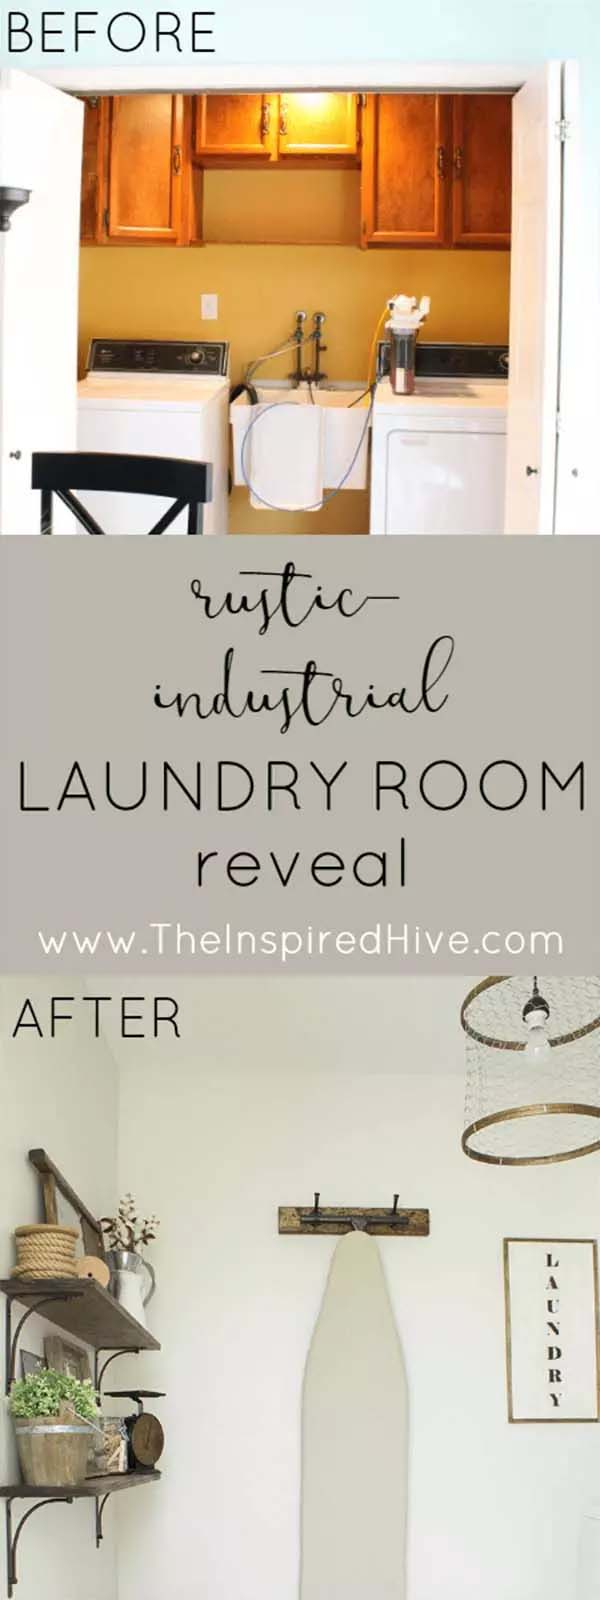 Rustic Industrial Laundry Room Reveal #laundryroom #makeover #homedecorimage